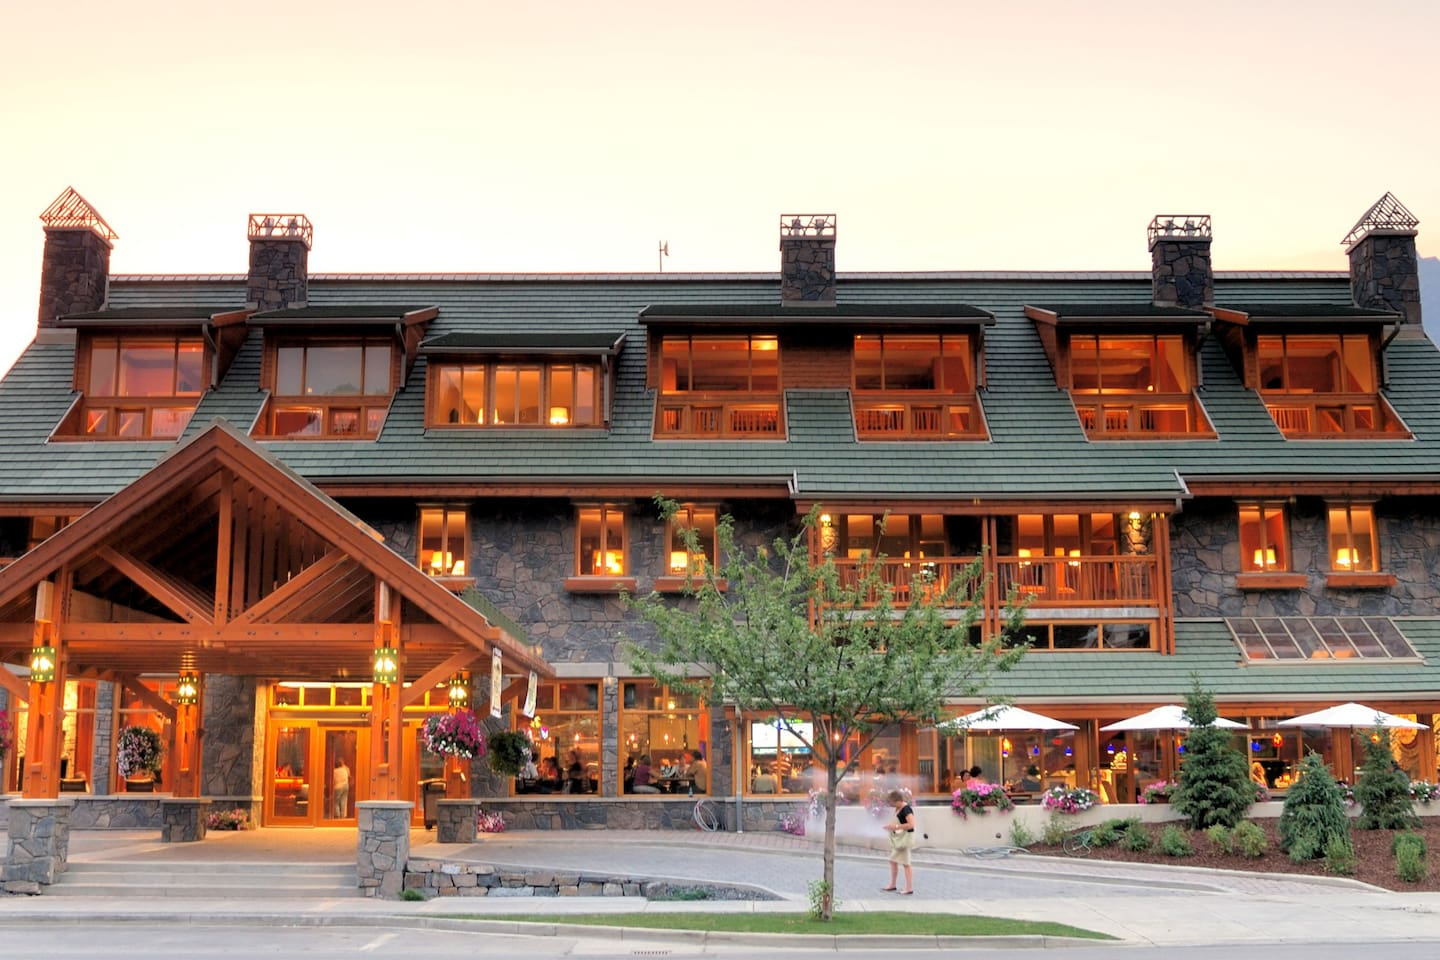 Experience a wonderful Banff vacation in this lovely chalet-style accommodation.